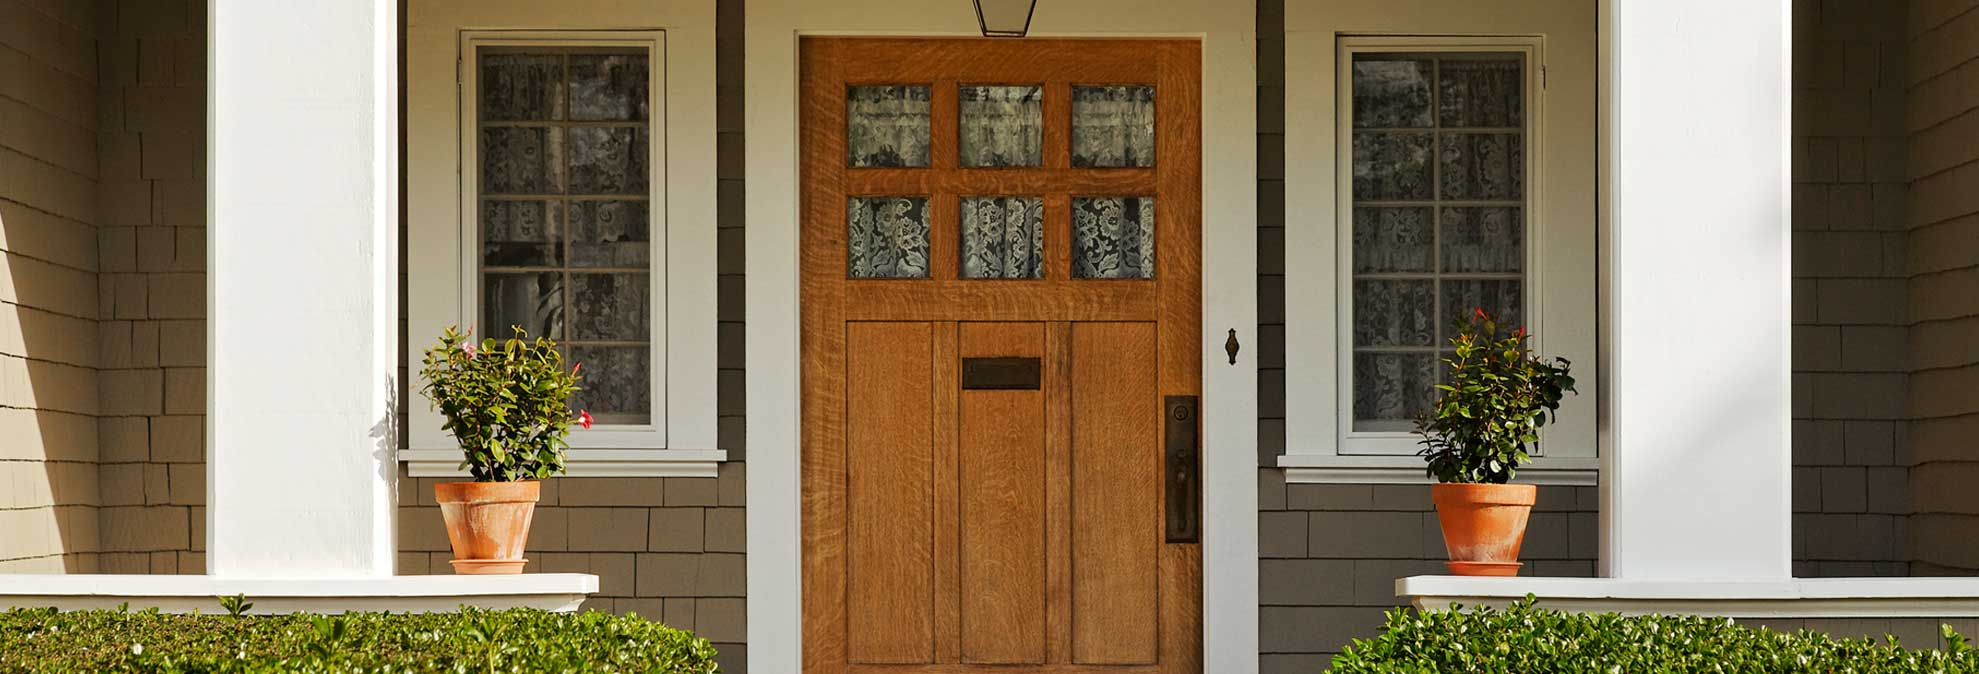 Best entry door buying guide consumer reports for House entry doors sale